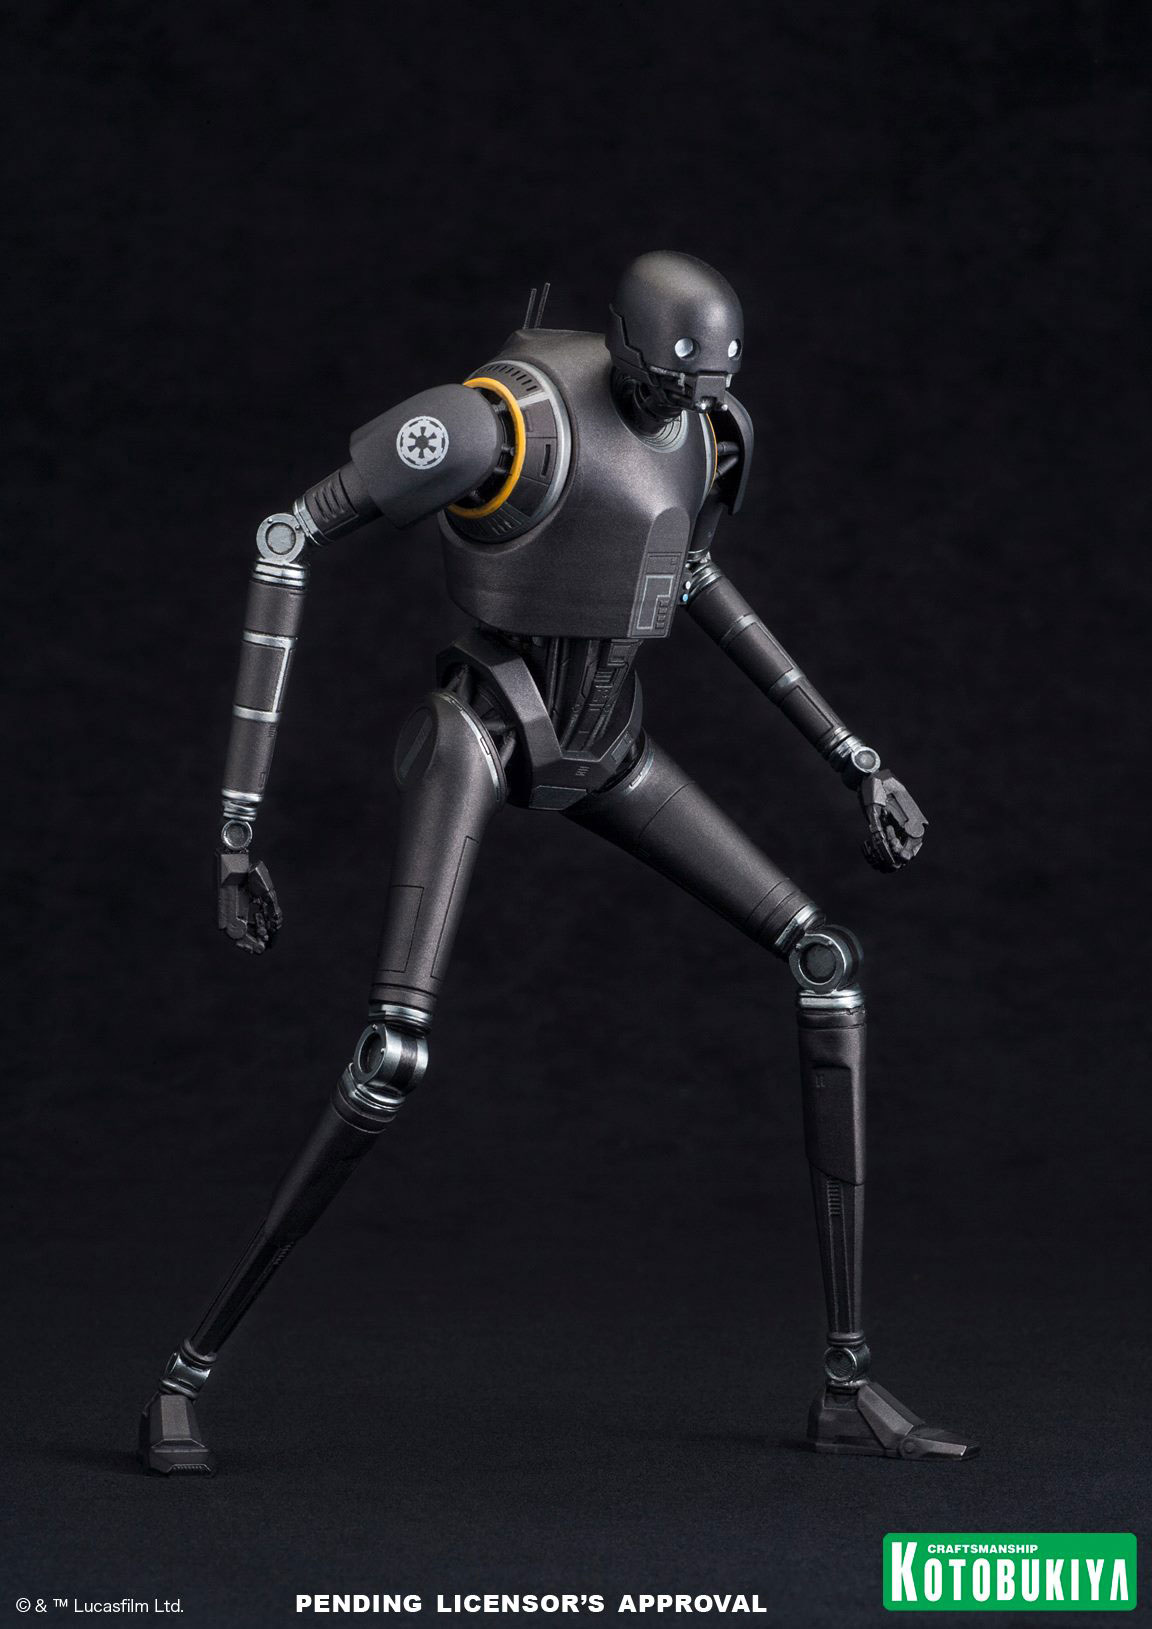 kotobukiya-star-wars-rogue-one-k-2so-artfx-statue-2